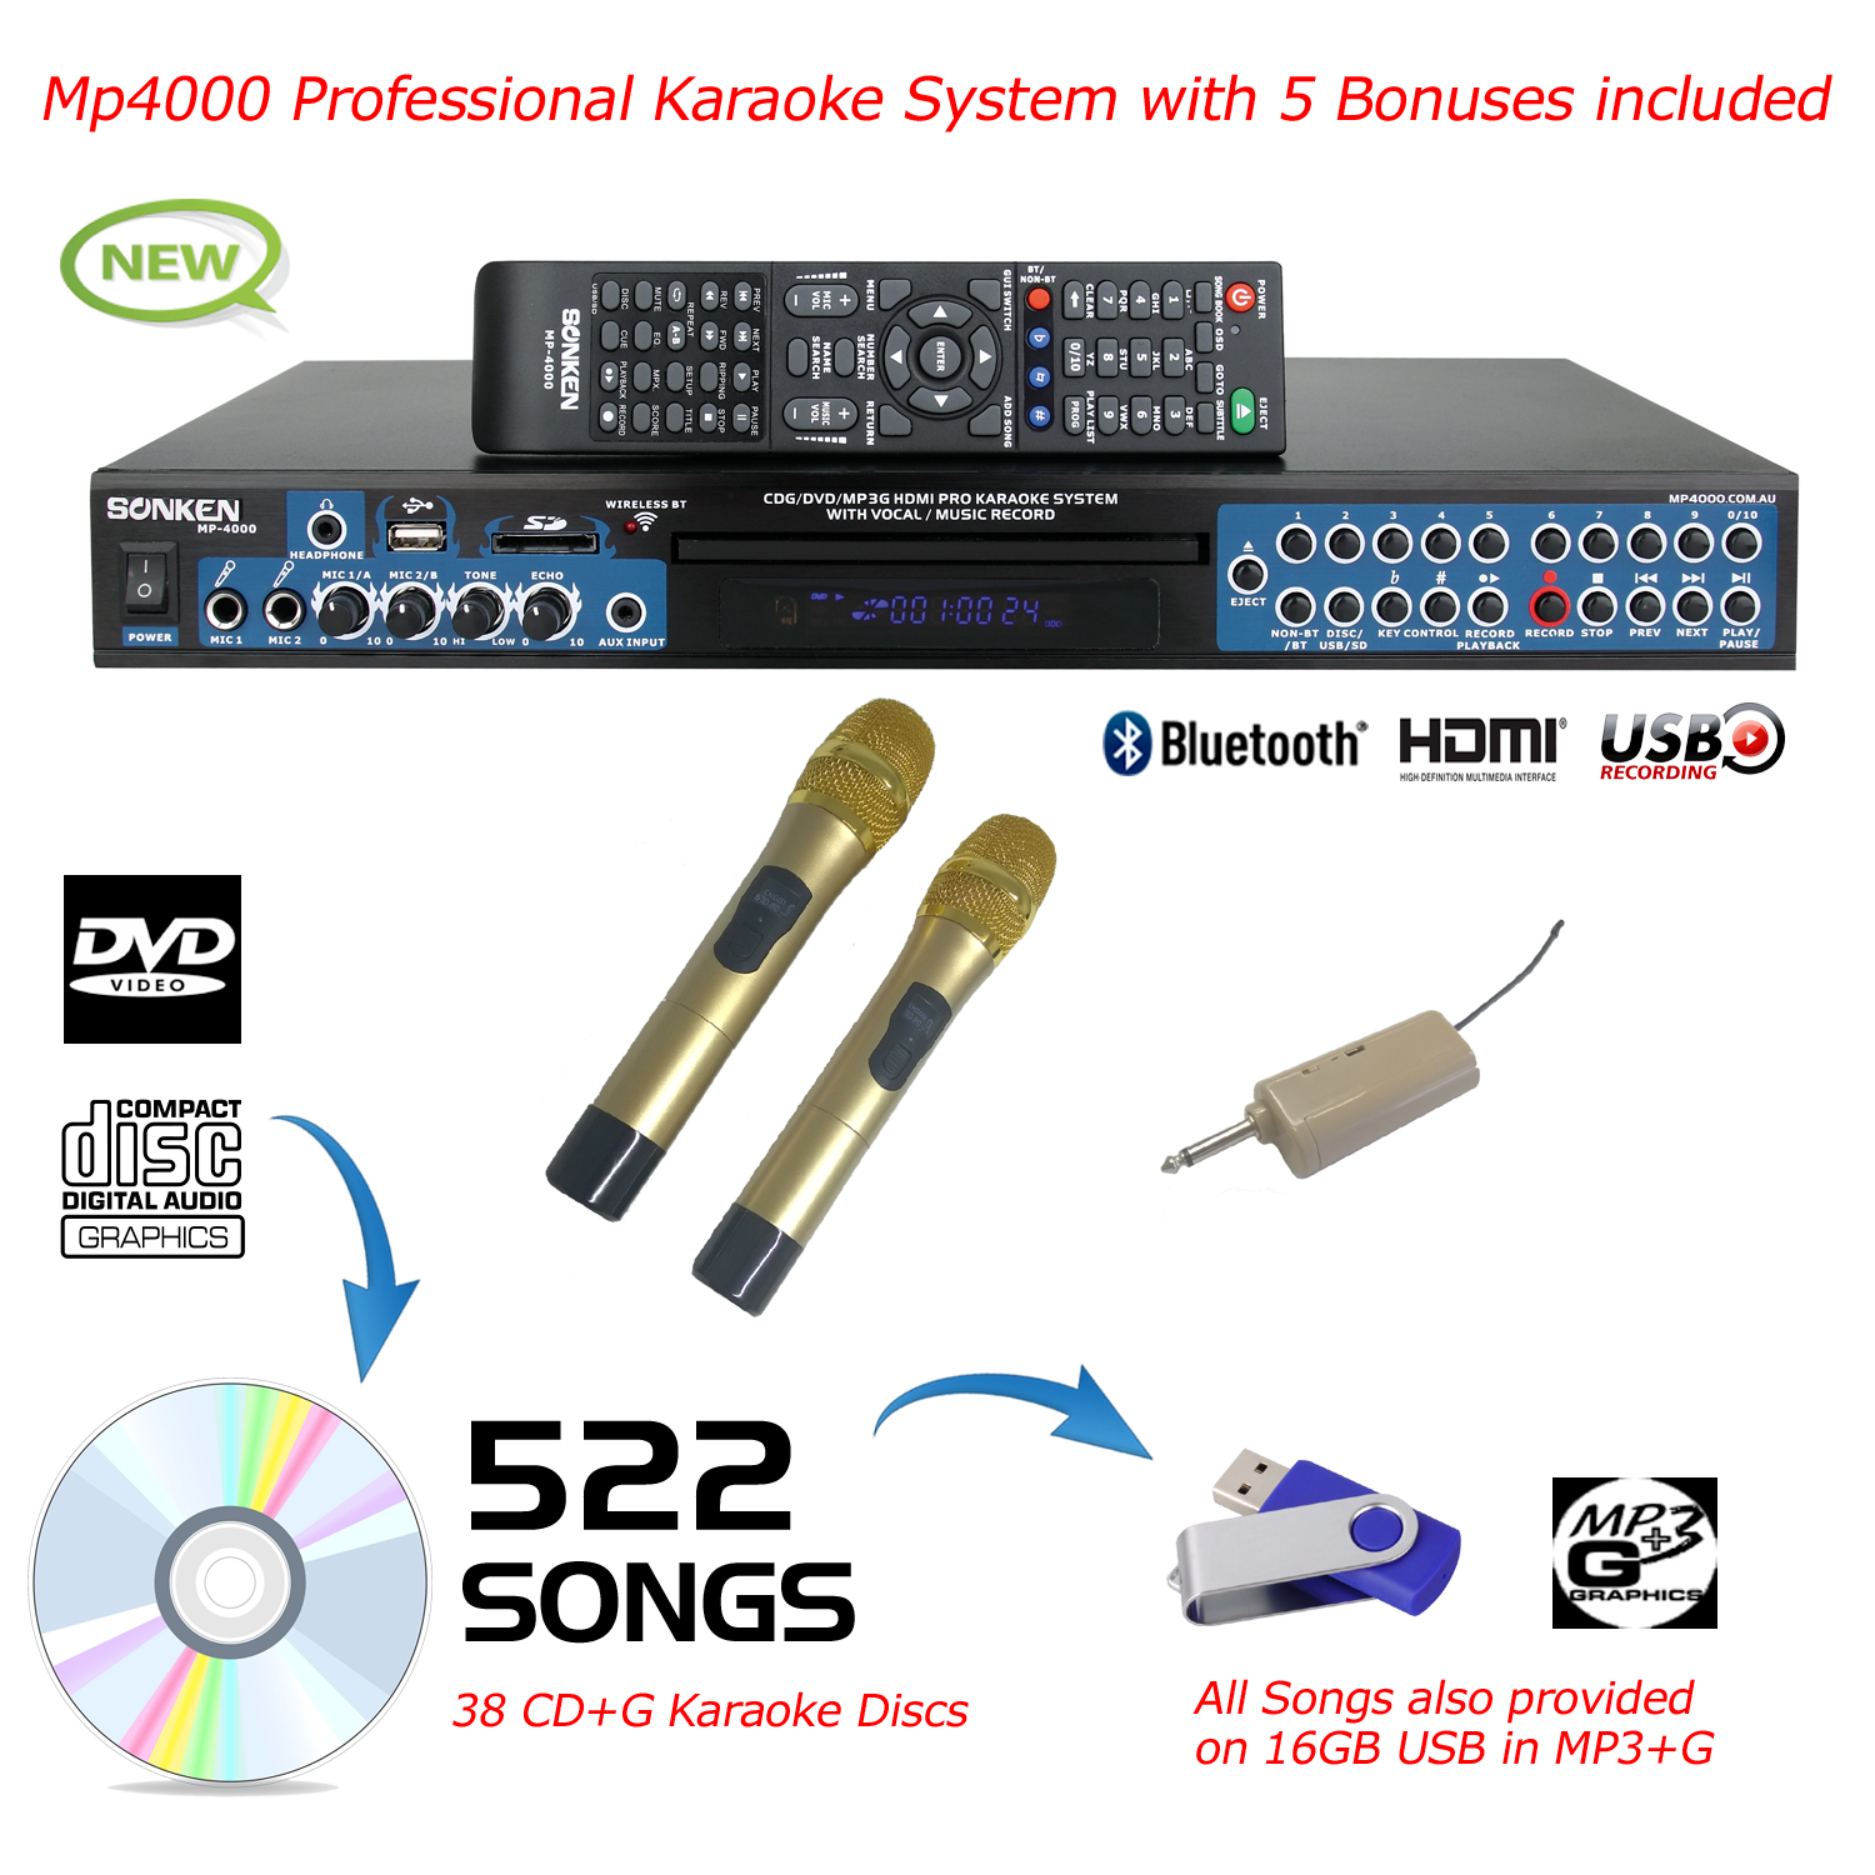 MP4000 + 522 SONGS + 2 WIRELESS MICROPHONES